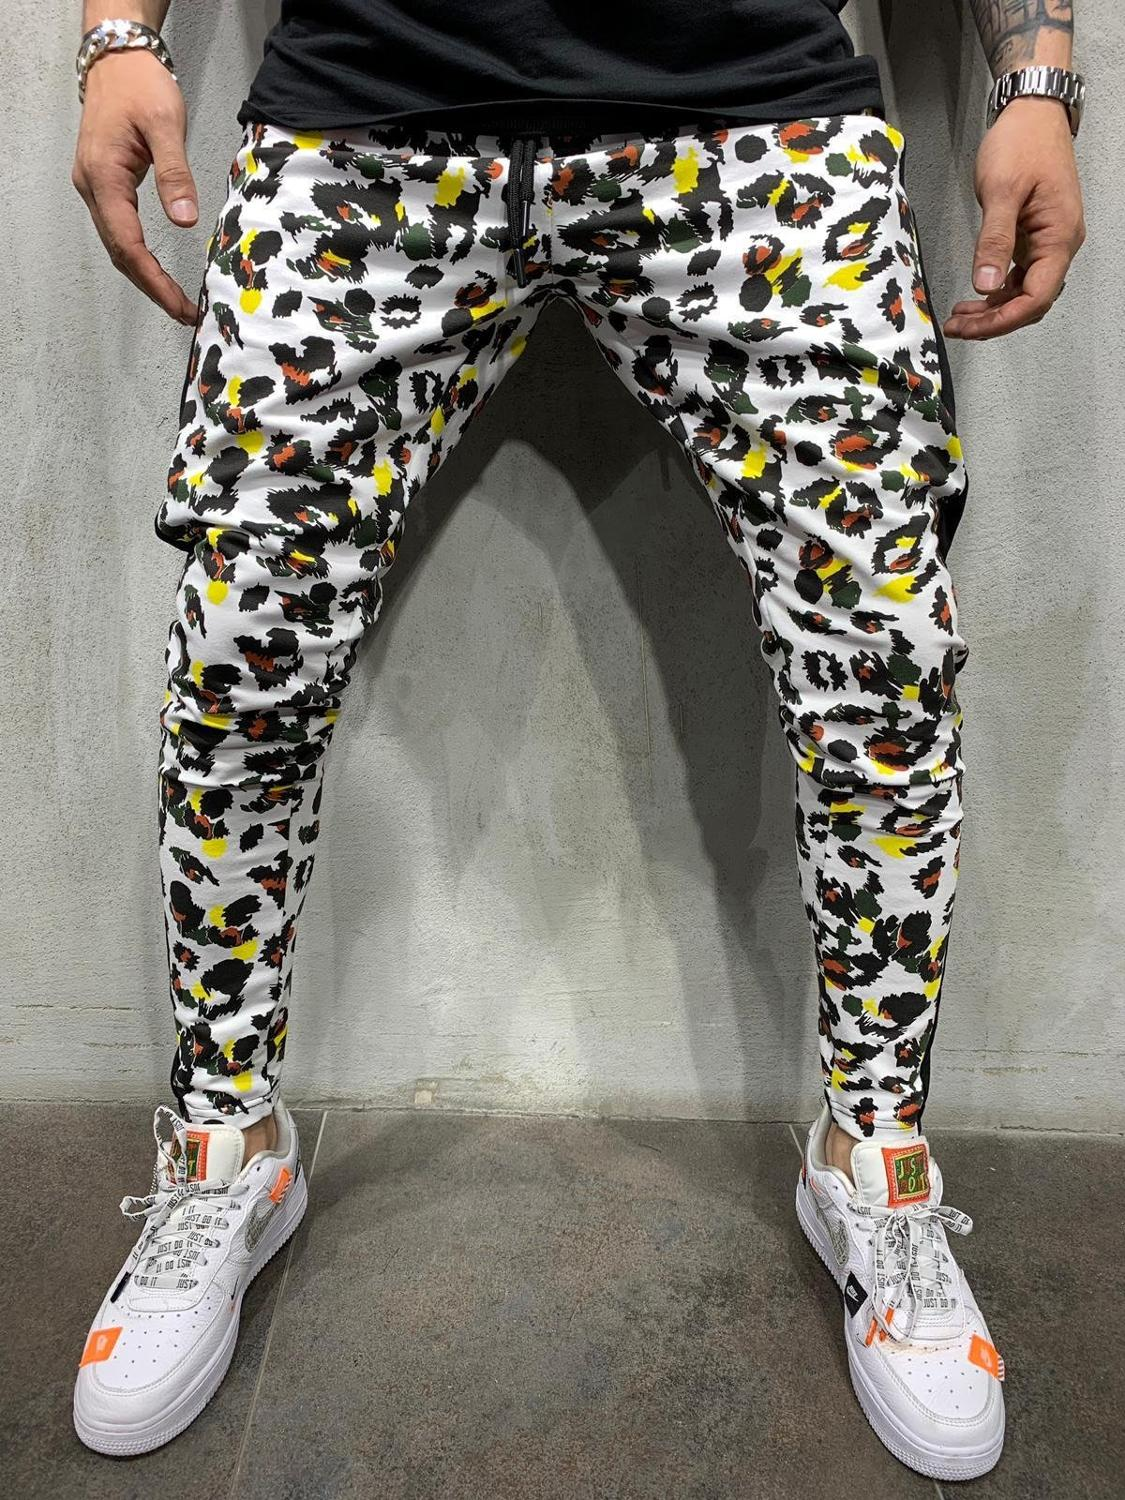 New Men's Camouflage Casual Hip hop Trousers 3d Printed Pattern Trousers Slim Feet pants Cotton color street pants good quality